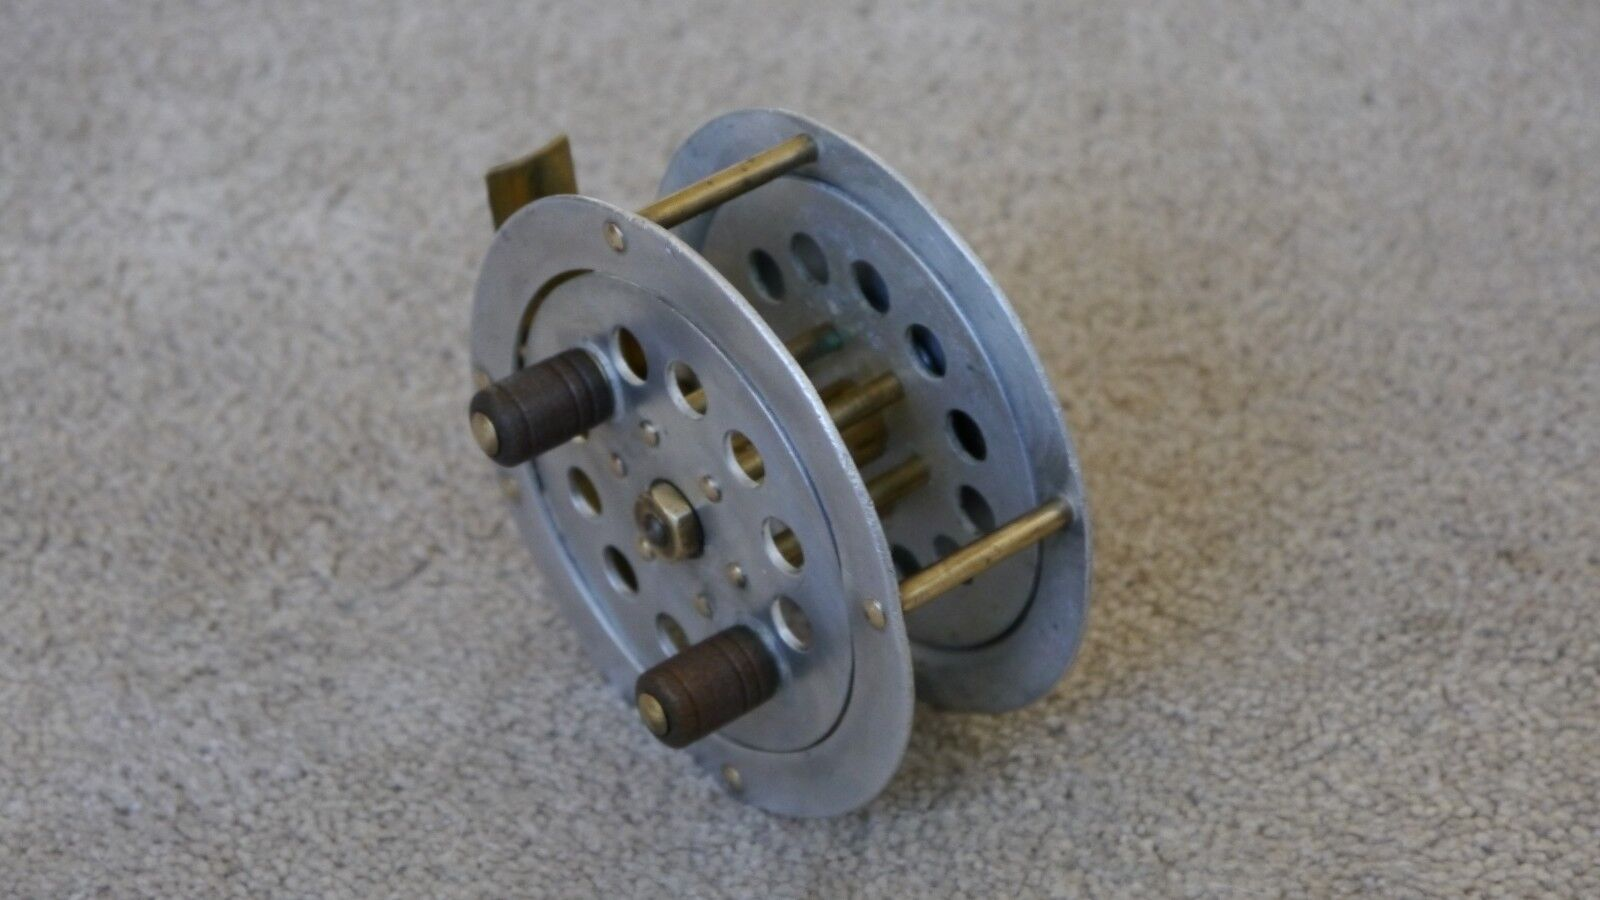 Alte Angelrolle/Fliegenrolle DAM PYRAMIDAL  EVER READY PYRAMIDAL DAM 3190 Old Fly Fishing Reel ac48bc